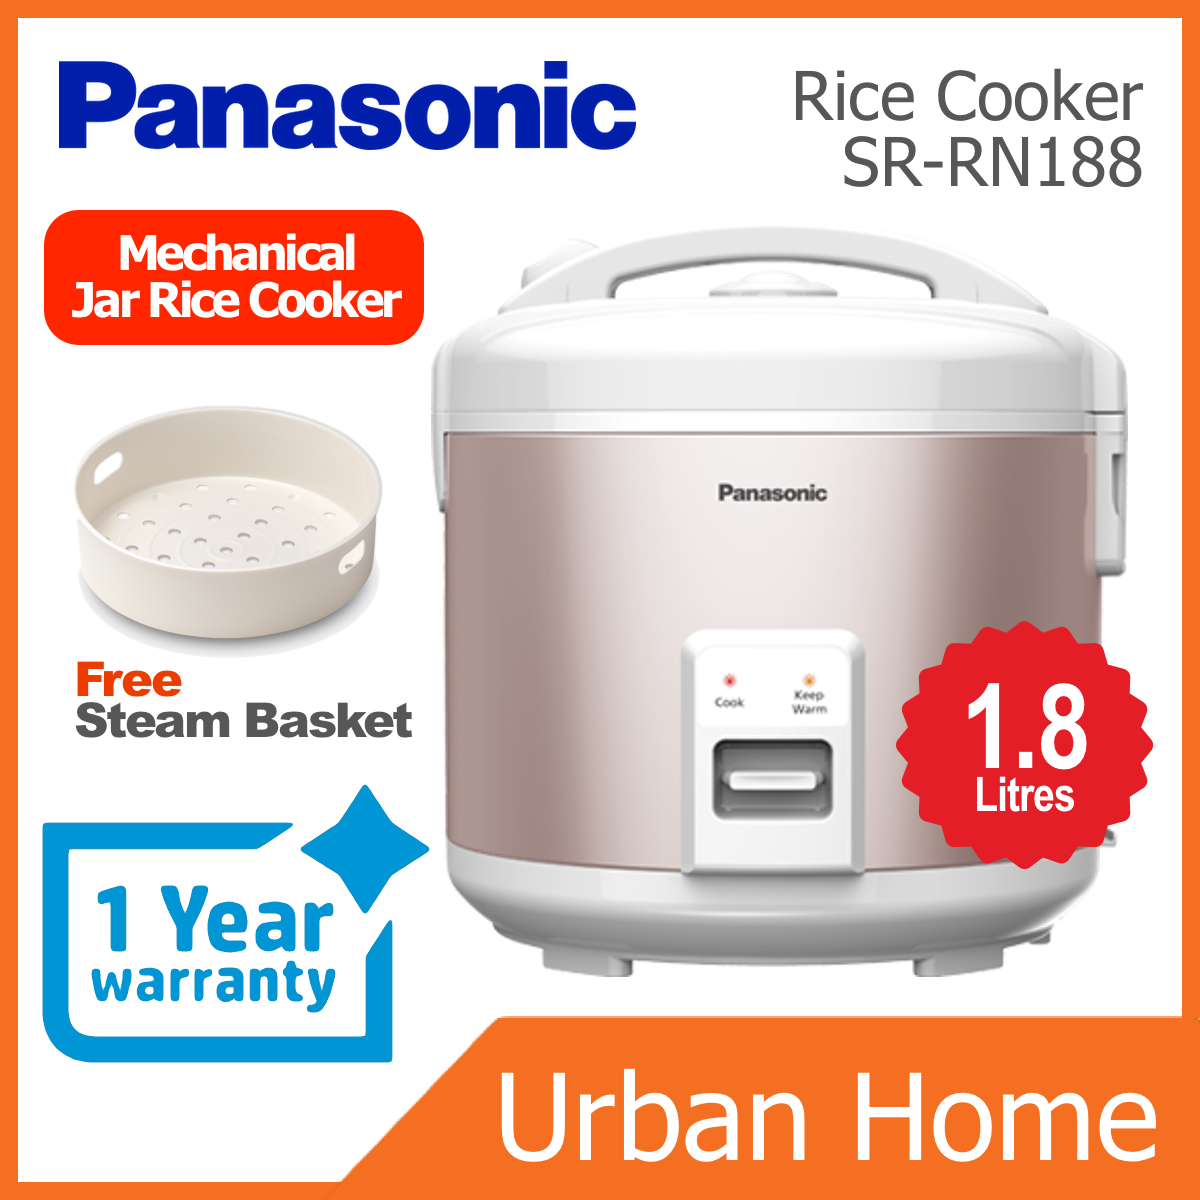 PANASONIC 1.8L Mechanical Jar Rice Cooker (SR-RN188/SR-RN188SSL/SR-RN188PEP/SRRN188/SRRN188SSL/SRRN188PEP)